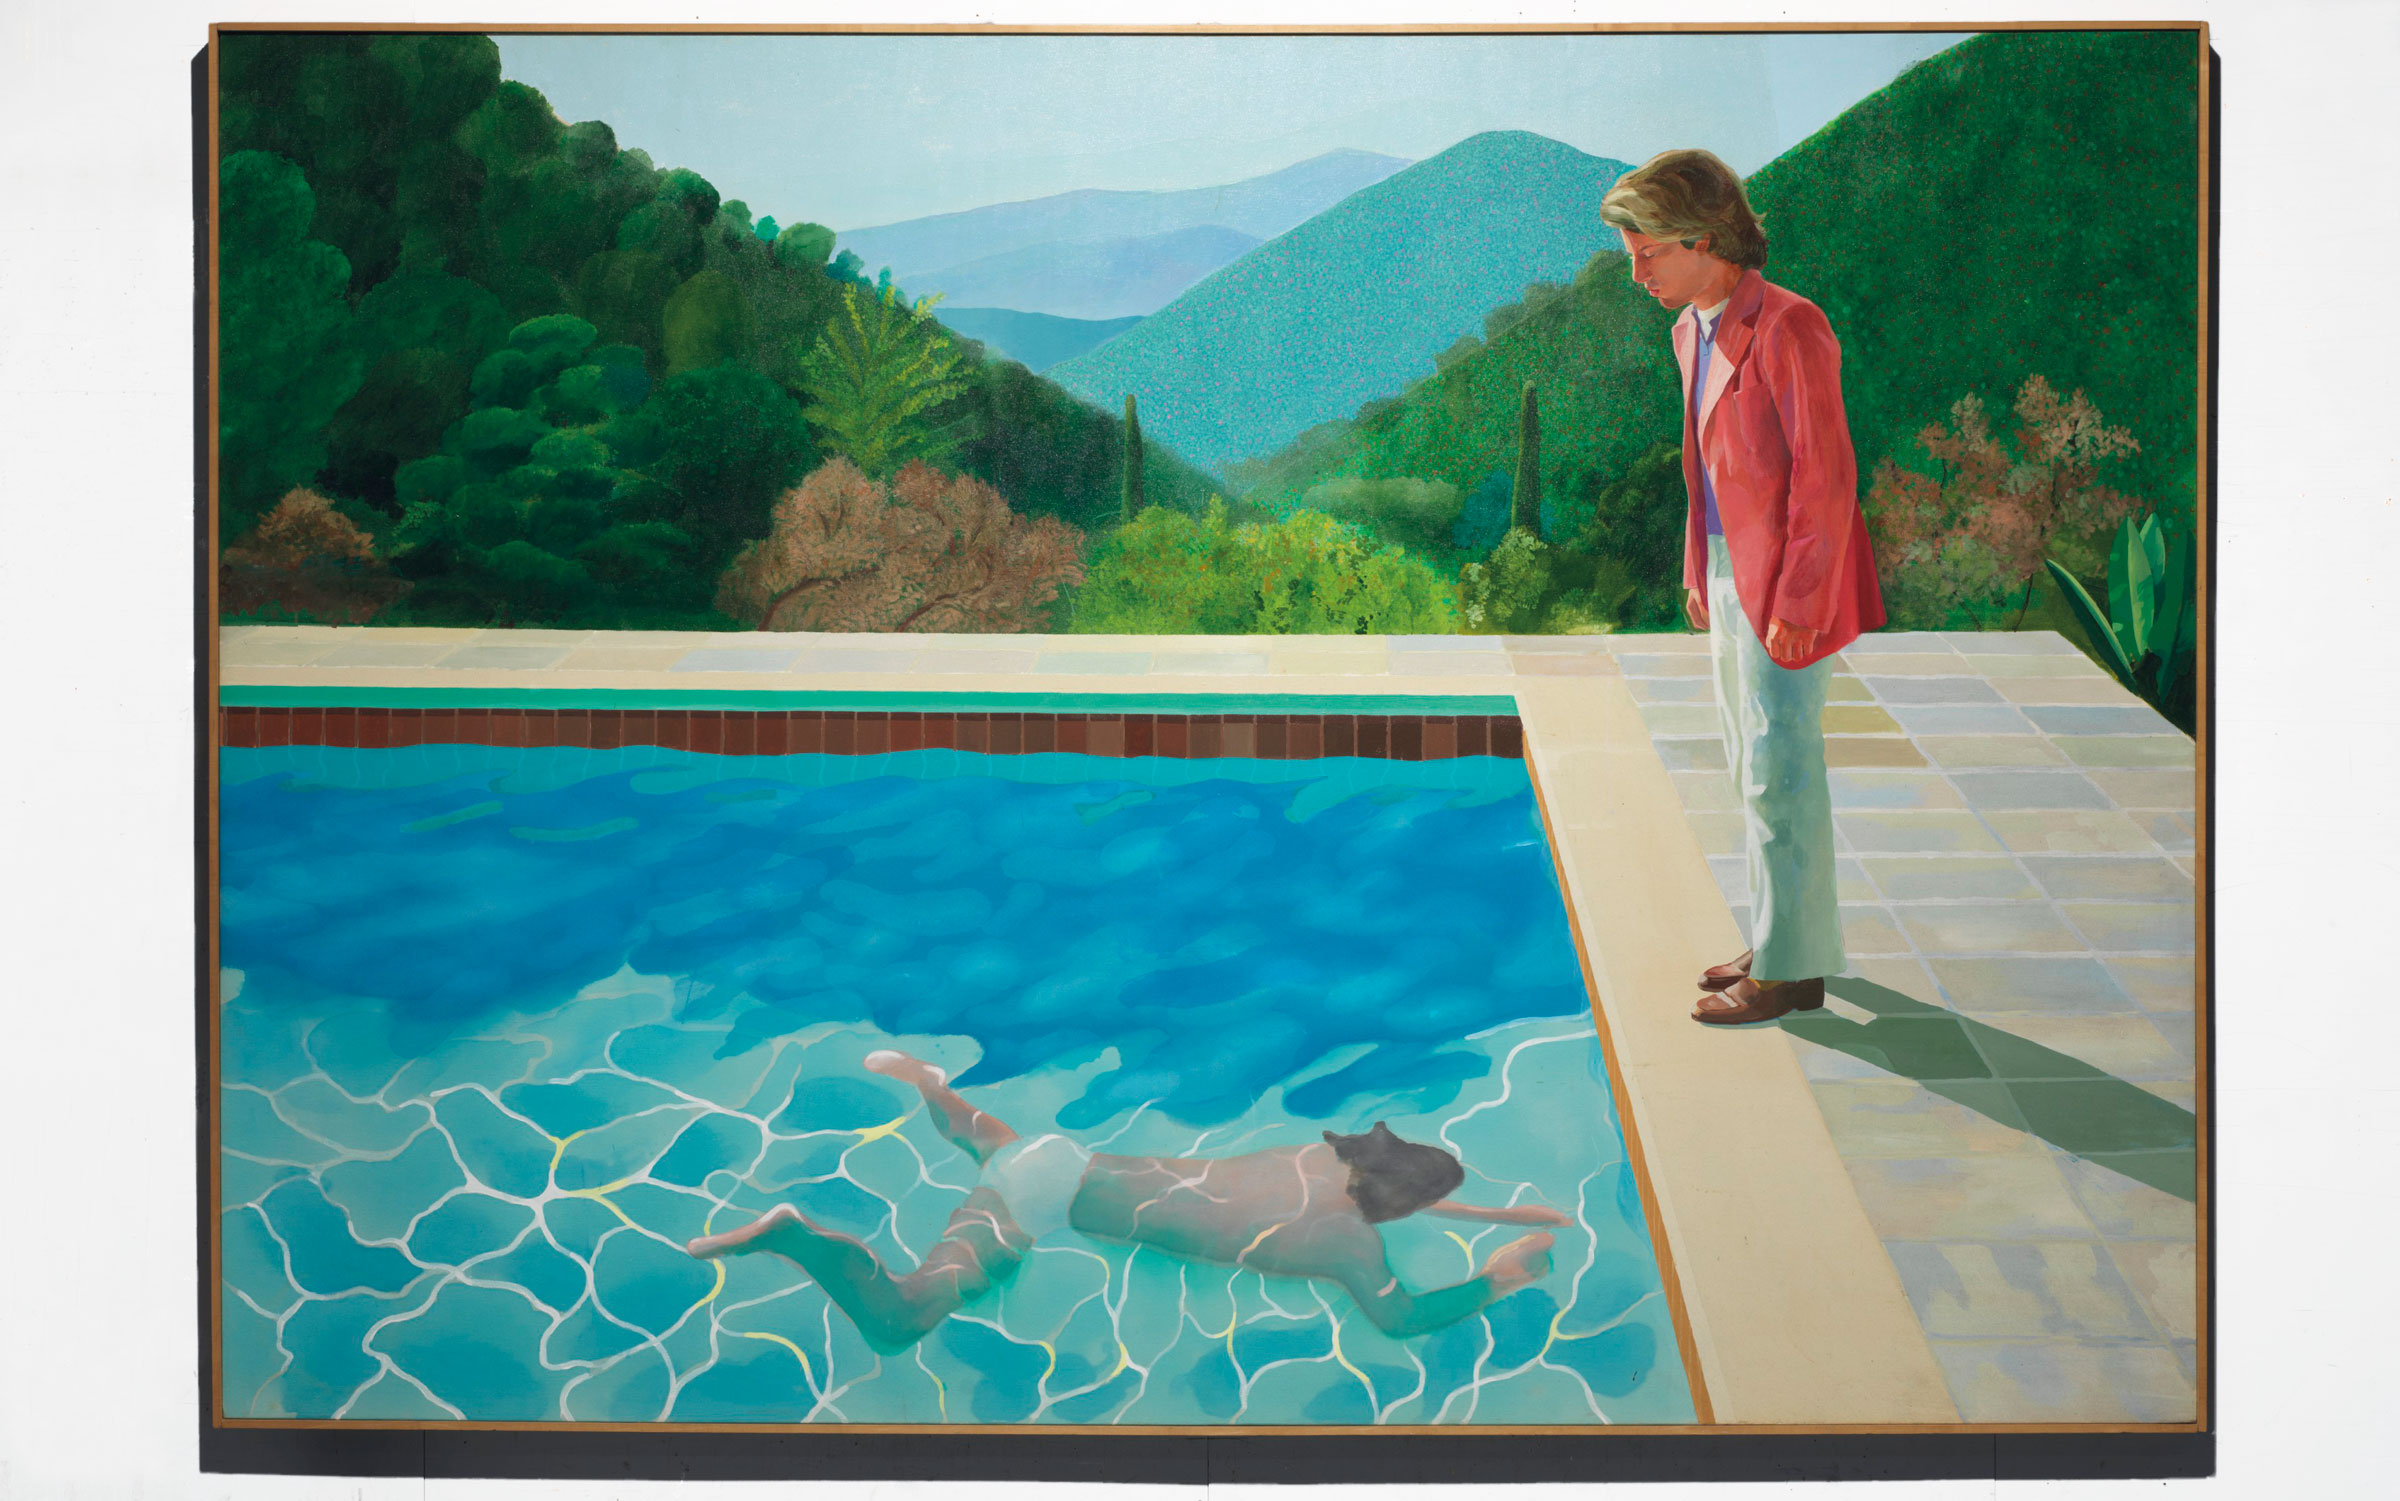 Property from a Distinguished Private Collector. David Hockney (b. 1937), Portrait of an Artist (Pool with Two Figures), painted in 1972. Acrylic on canvas. 84 x 120 in (213.5 x 305 cm). Sold for